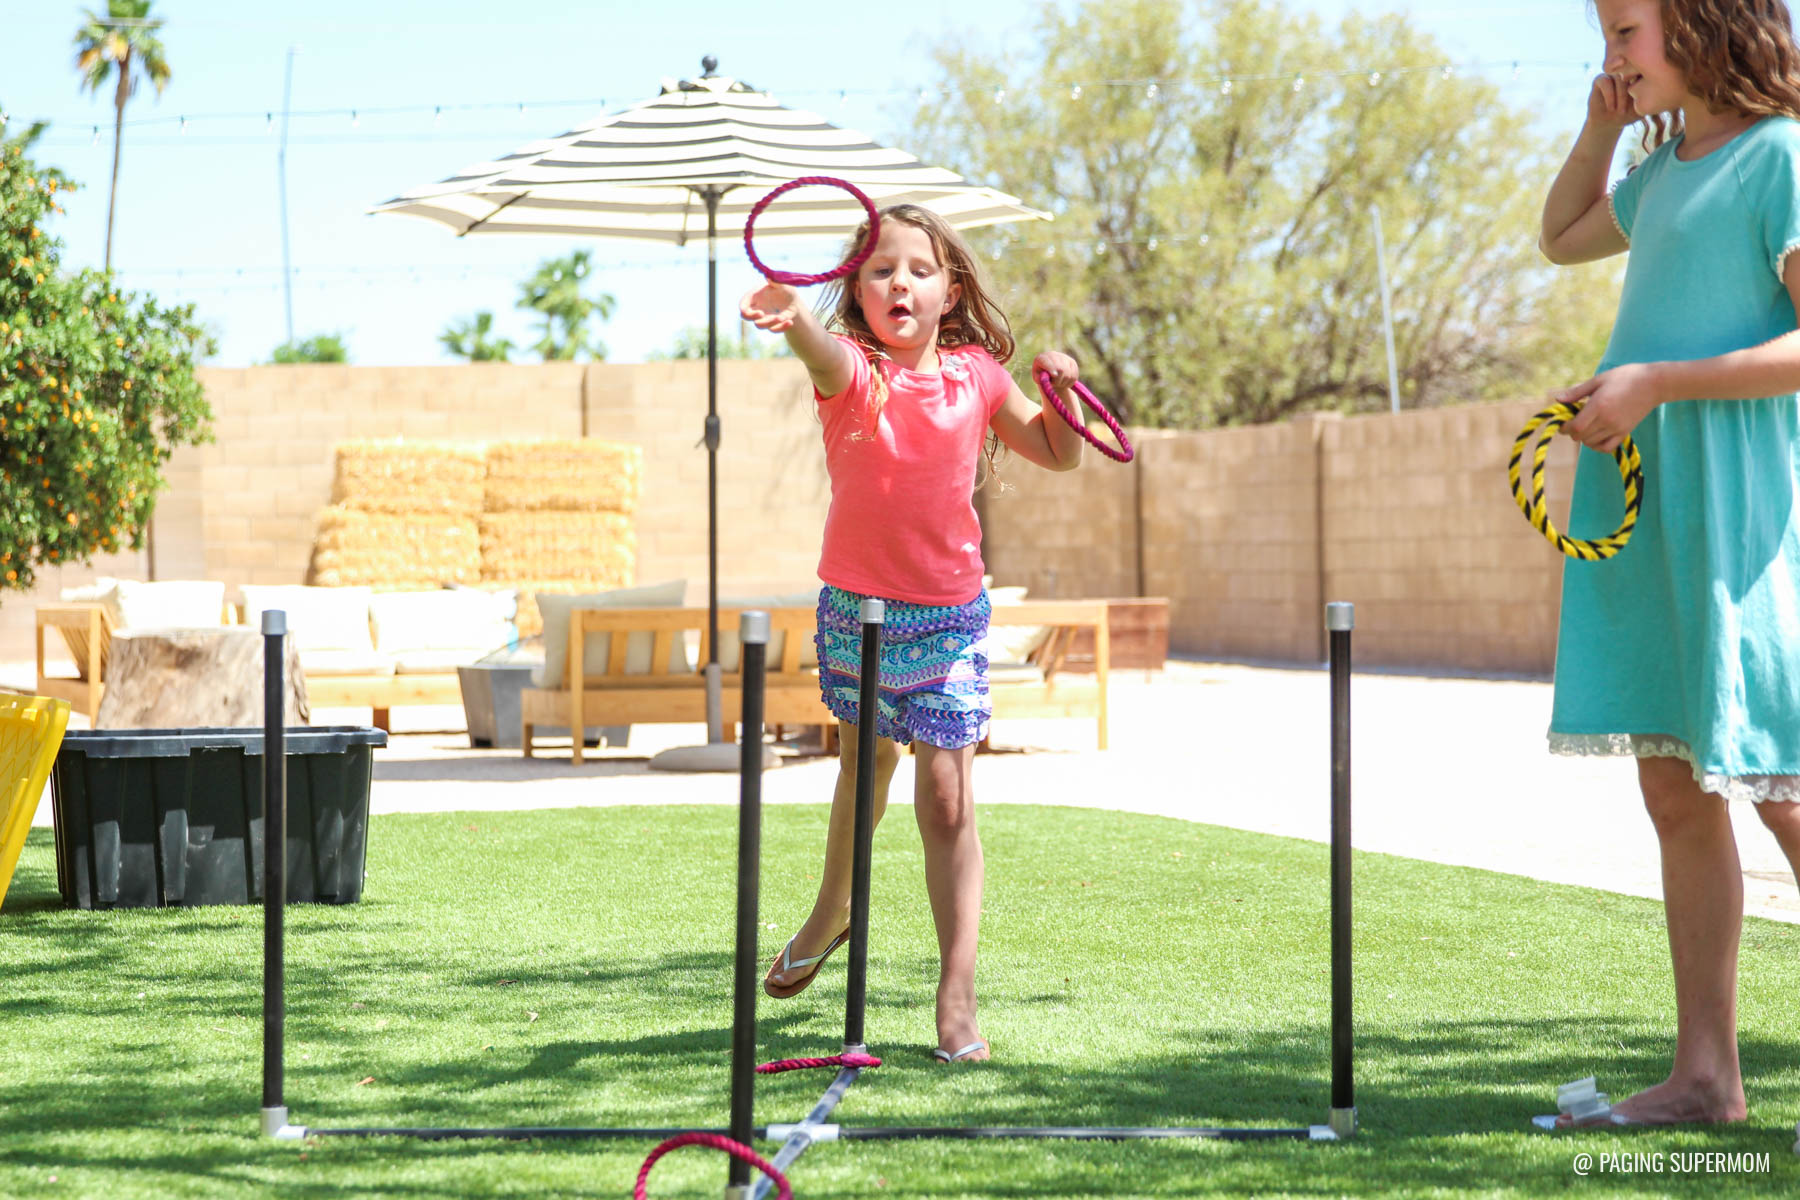 How to make a Ring Toss Game - DIY Backyard Games Plans from @HomeDepot via @PagingSupermom